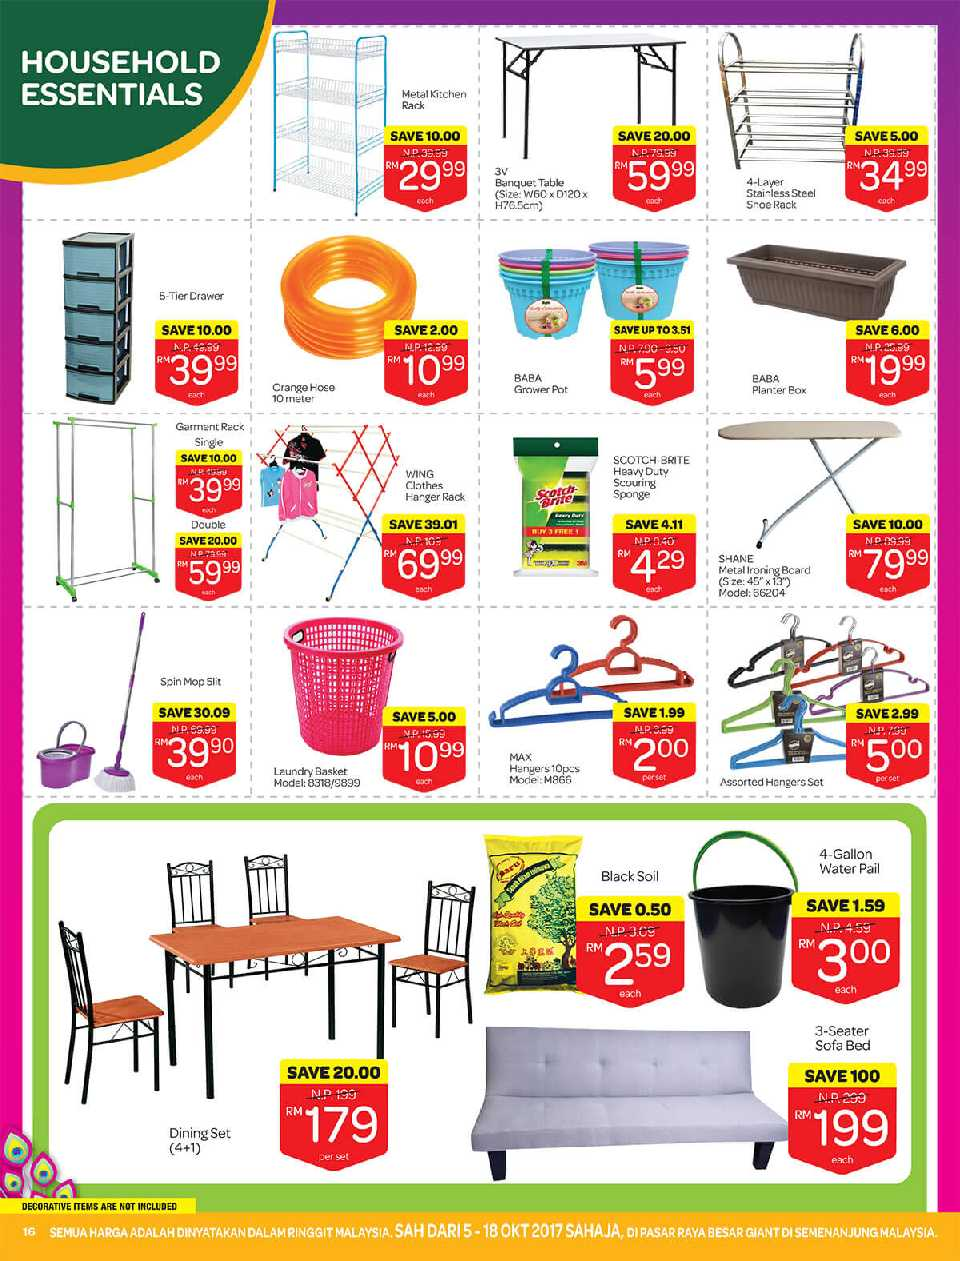 Sofa Bed Giant Malaysia Giant Promotion Catalogue 5 October 18 October 2017